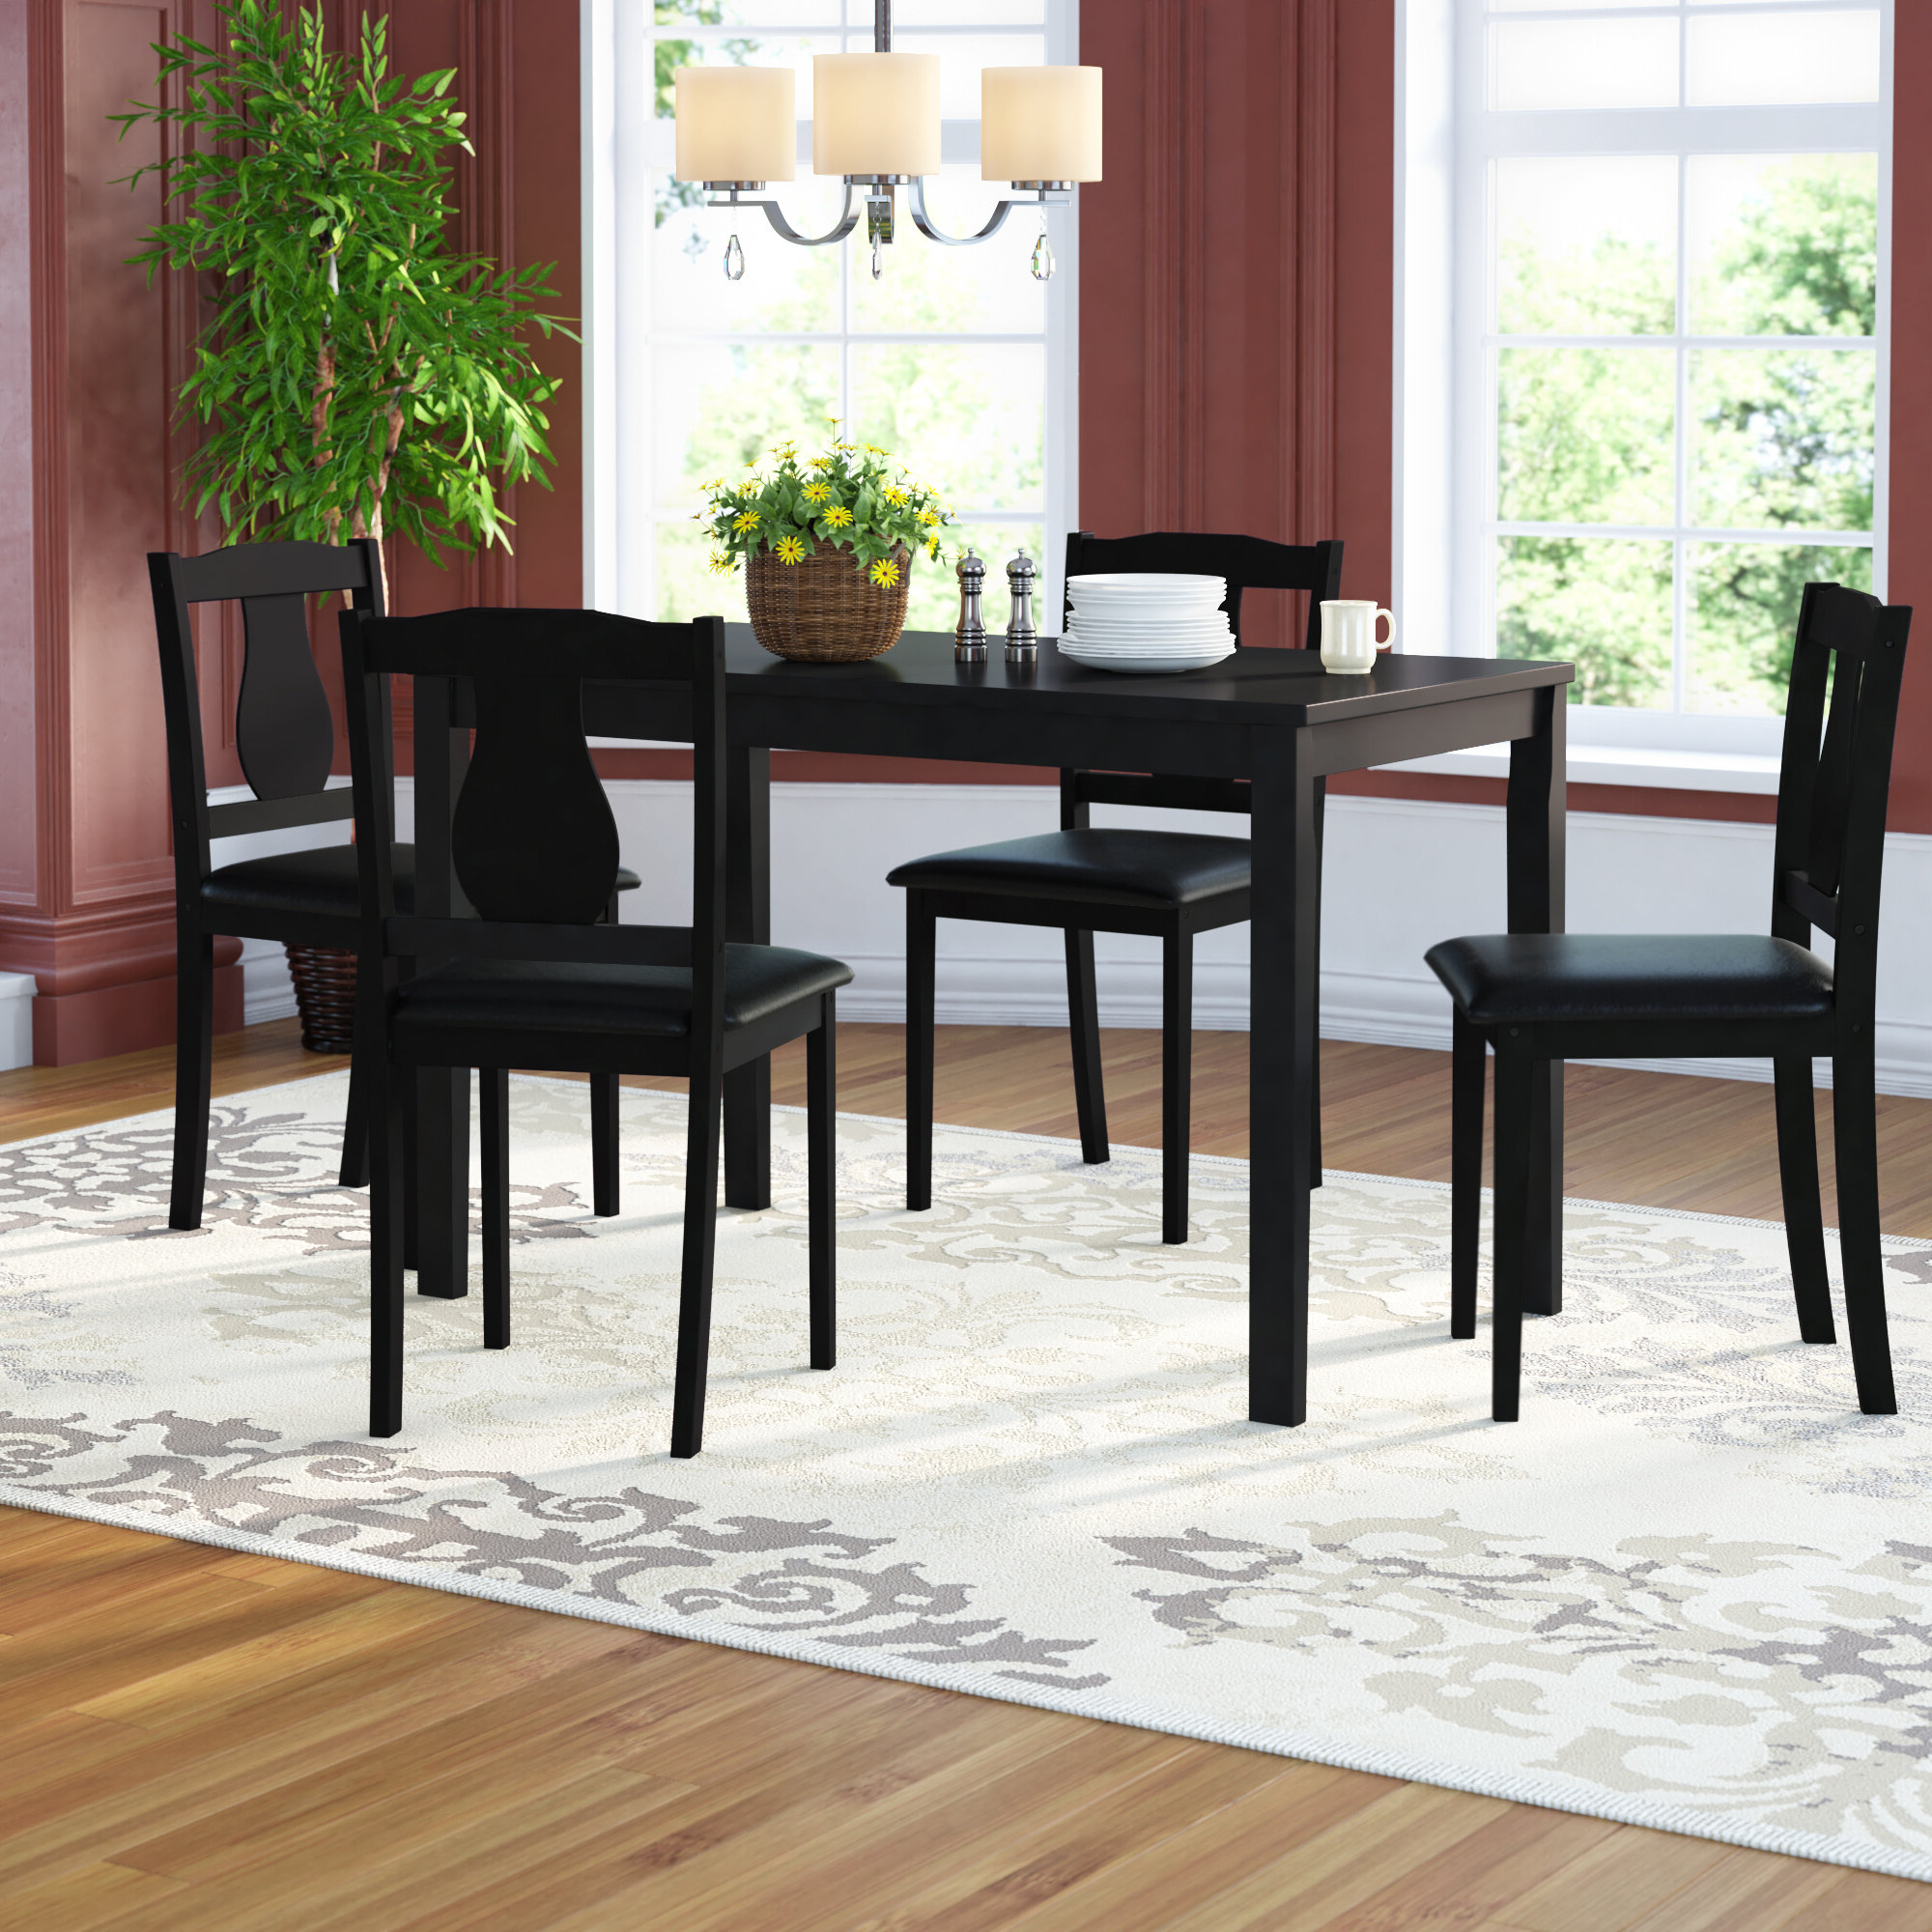 Wayfair Pertaining To Well Liked Maynard 5 Piece Dining Sets (View 5 of 25)